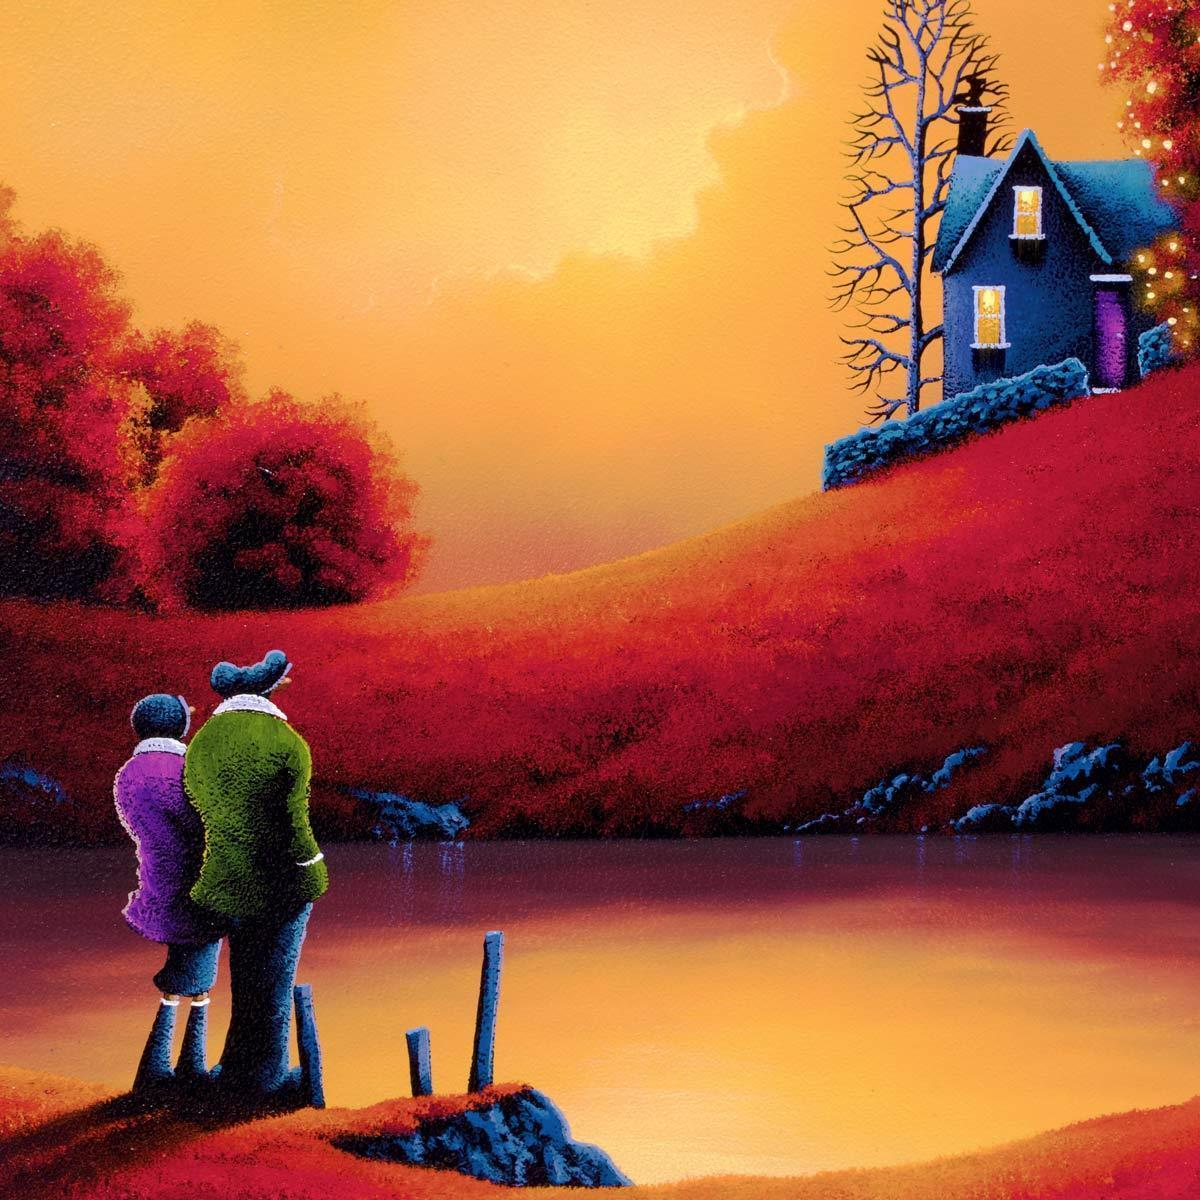 Where Love Lives - Original David Renshaw